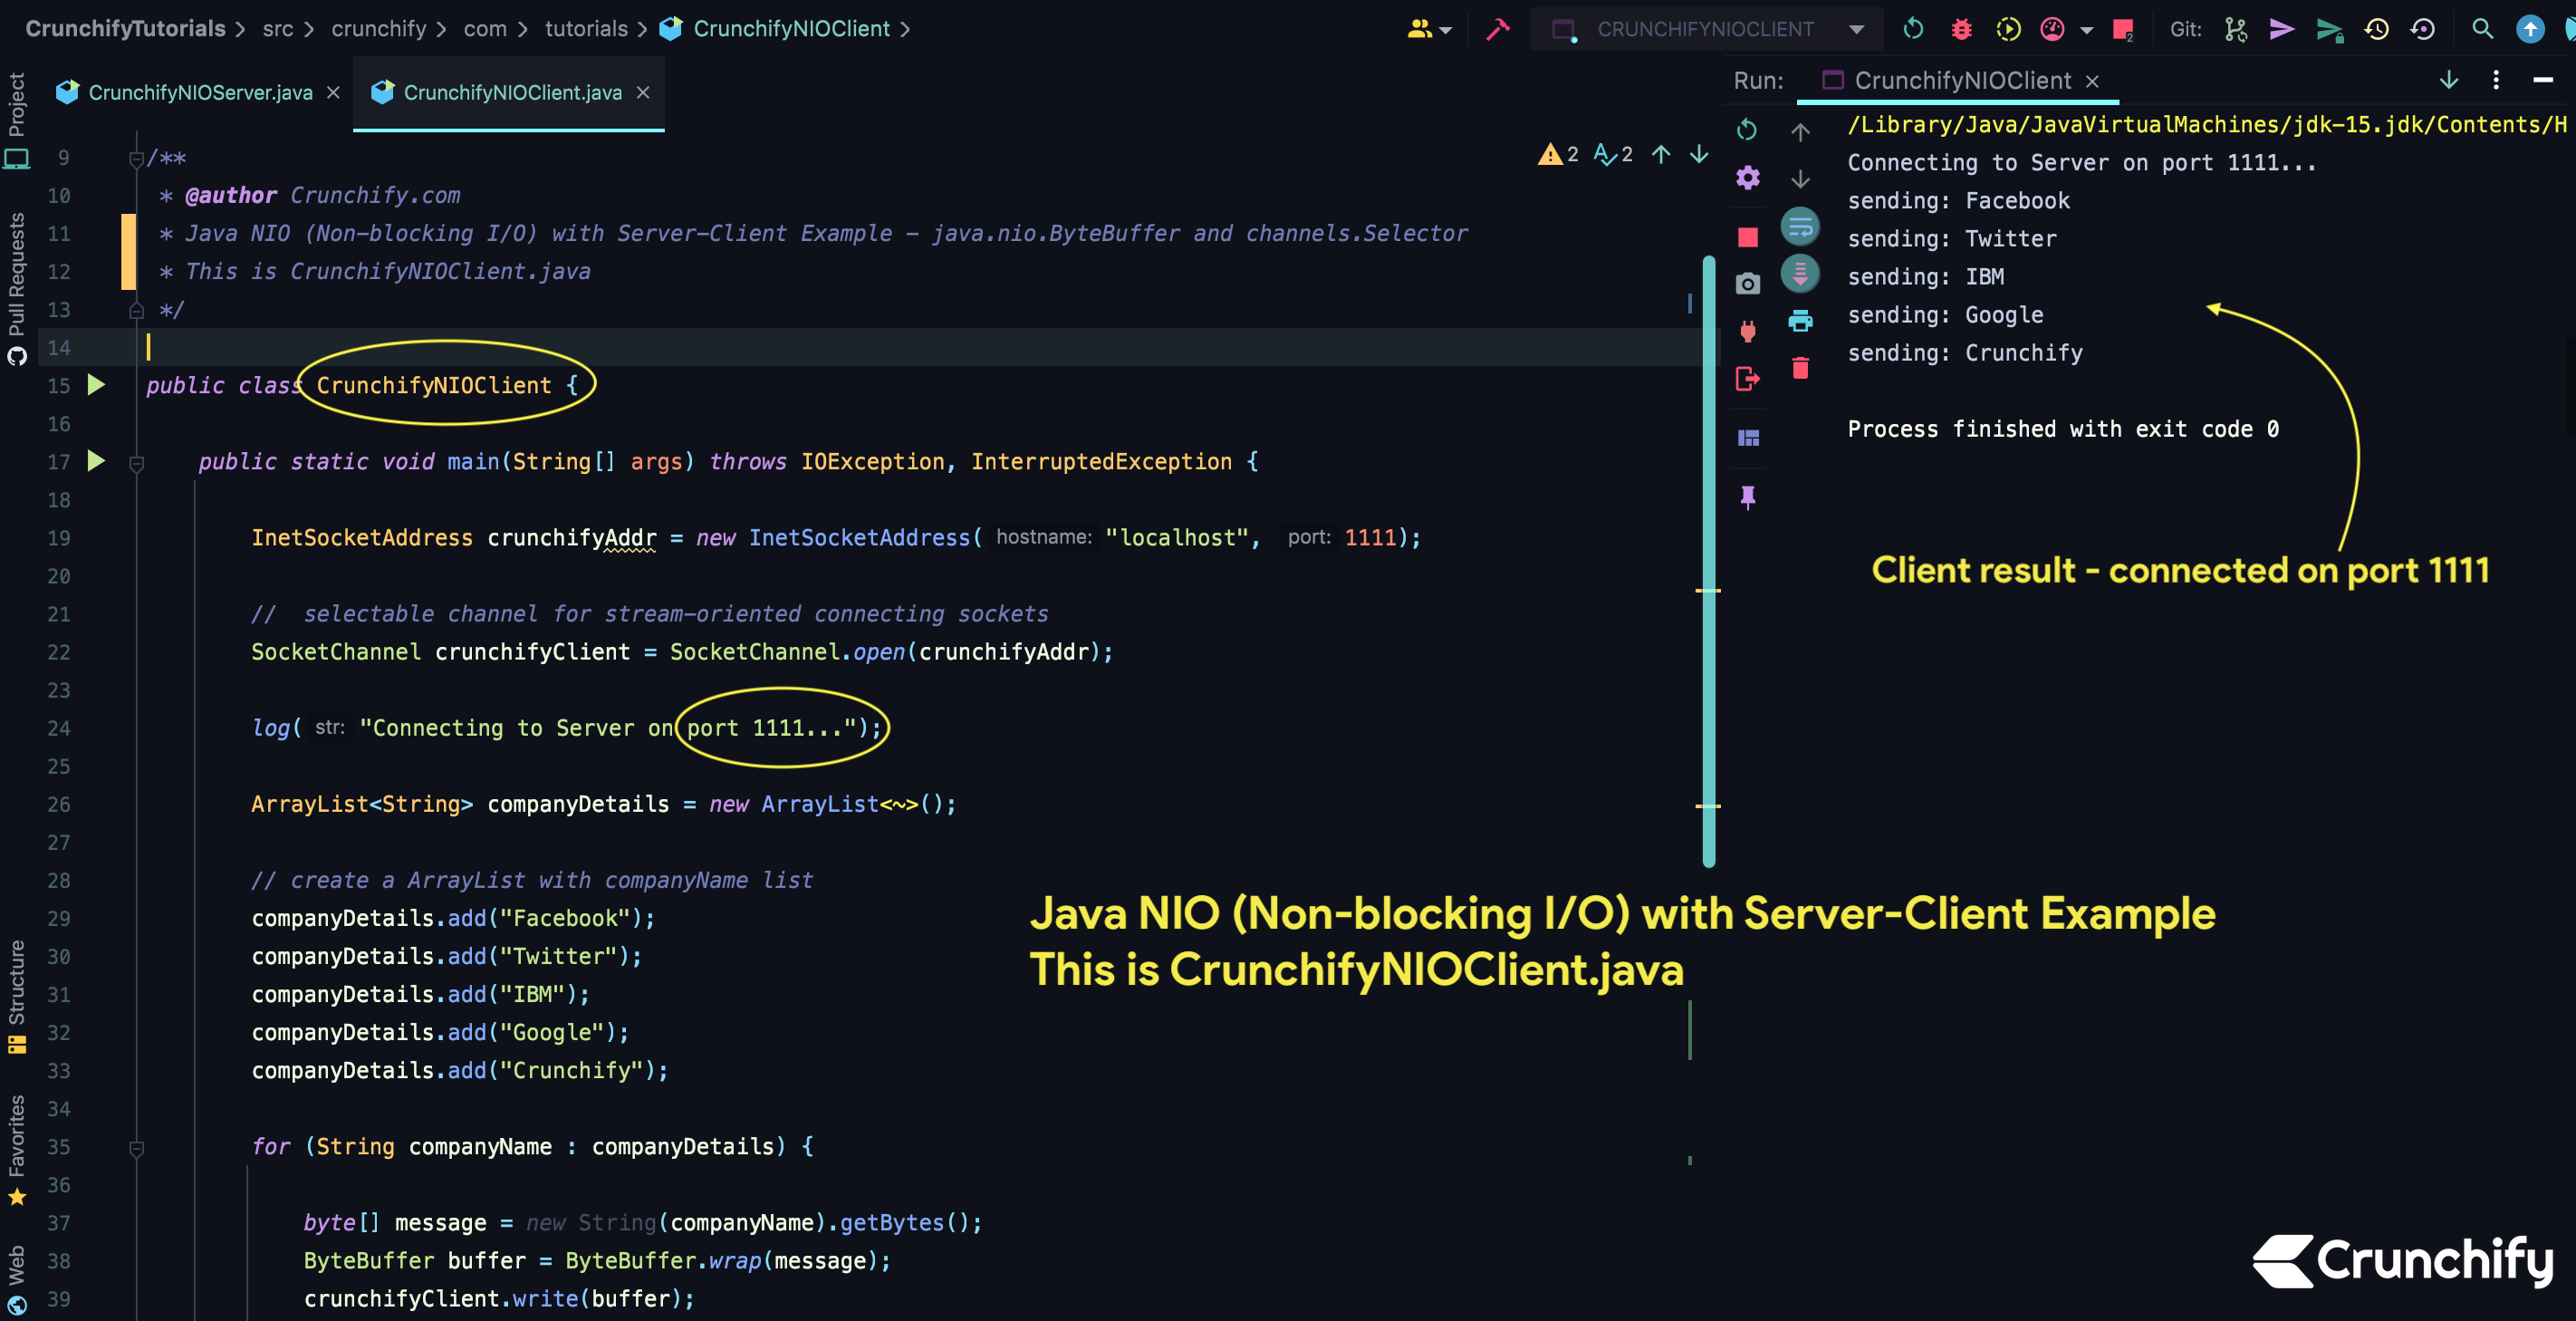 Java NIO (Non-blocking I:O) with Server-Client Example - CrunchifyNIOClient.java